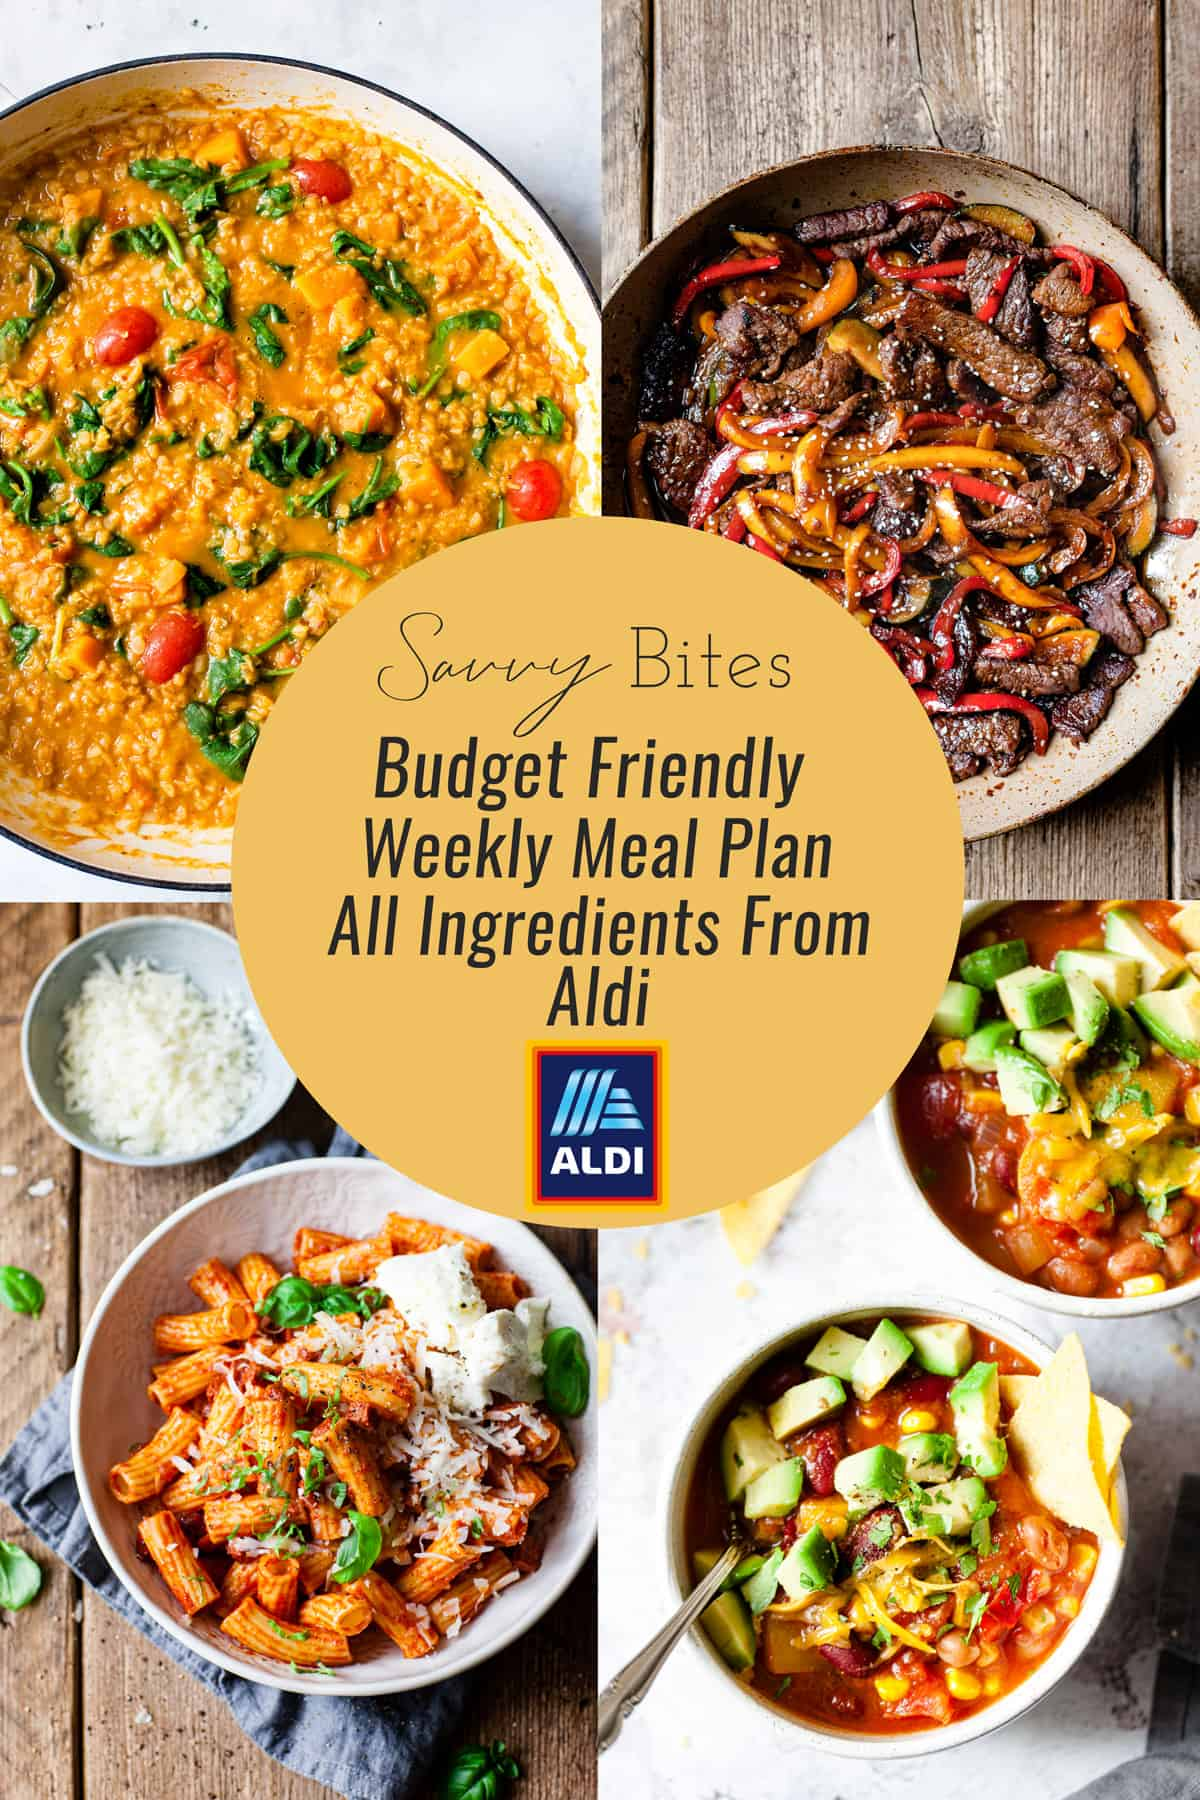 Aldi meal plan including budget friendly recipes and how to photos.